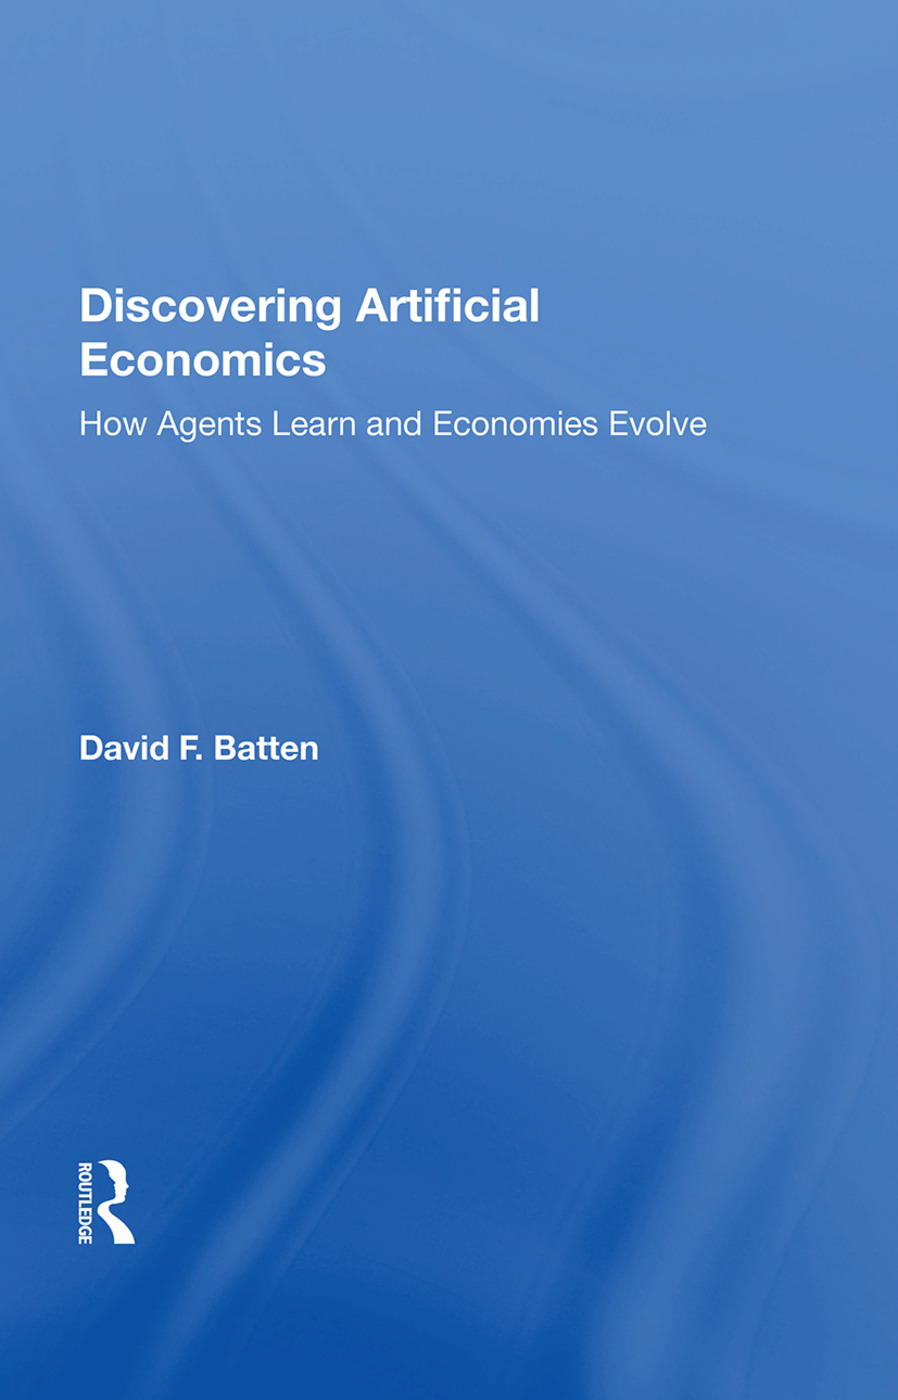 Discovering Artificial Economics: How Agents Learn and Economies Evolve book cover